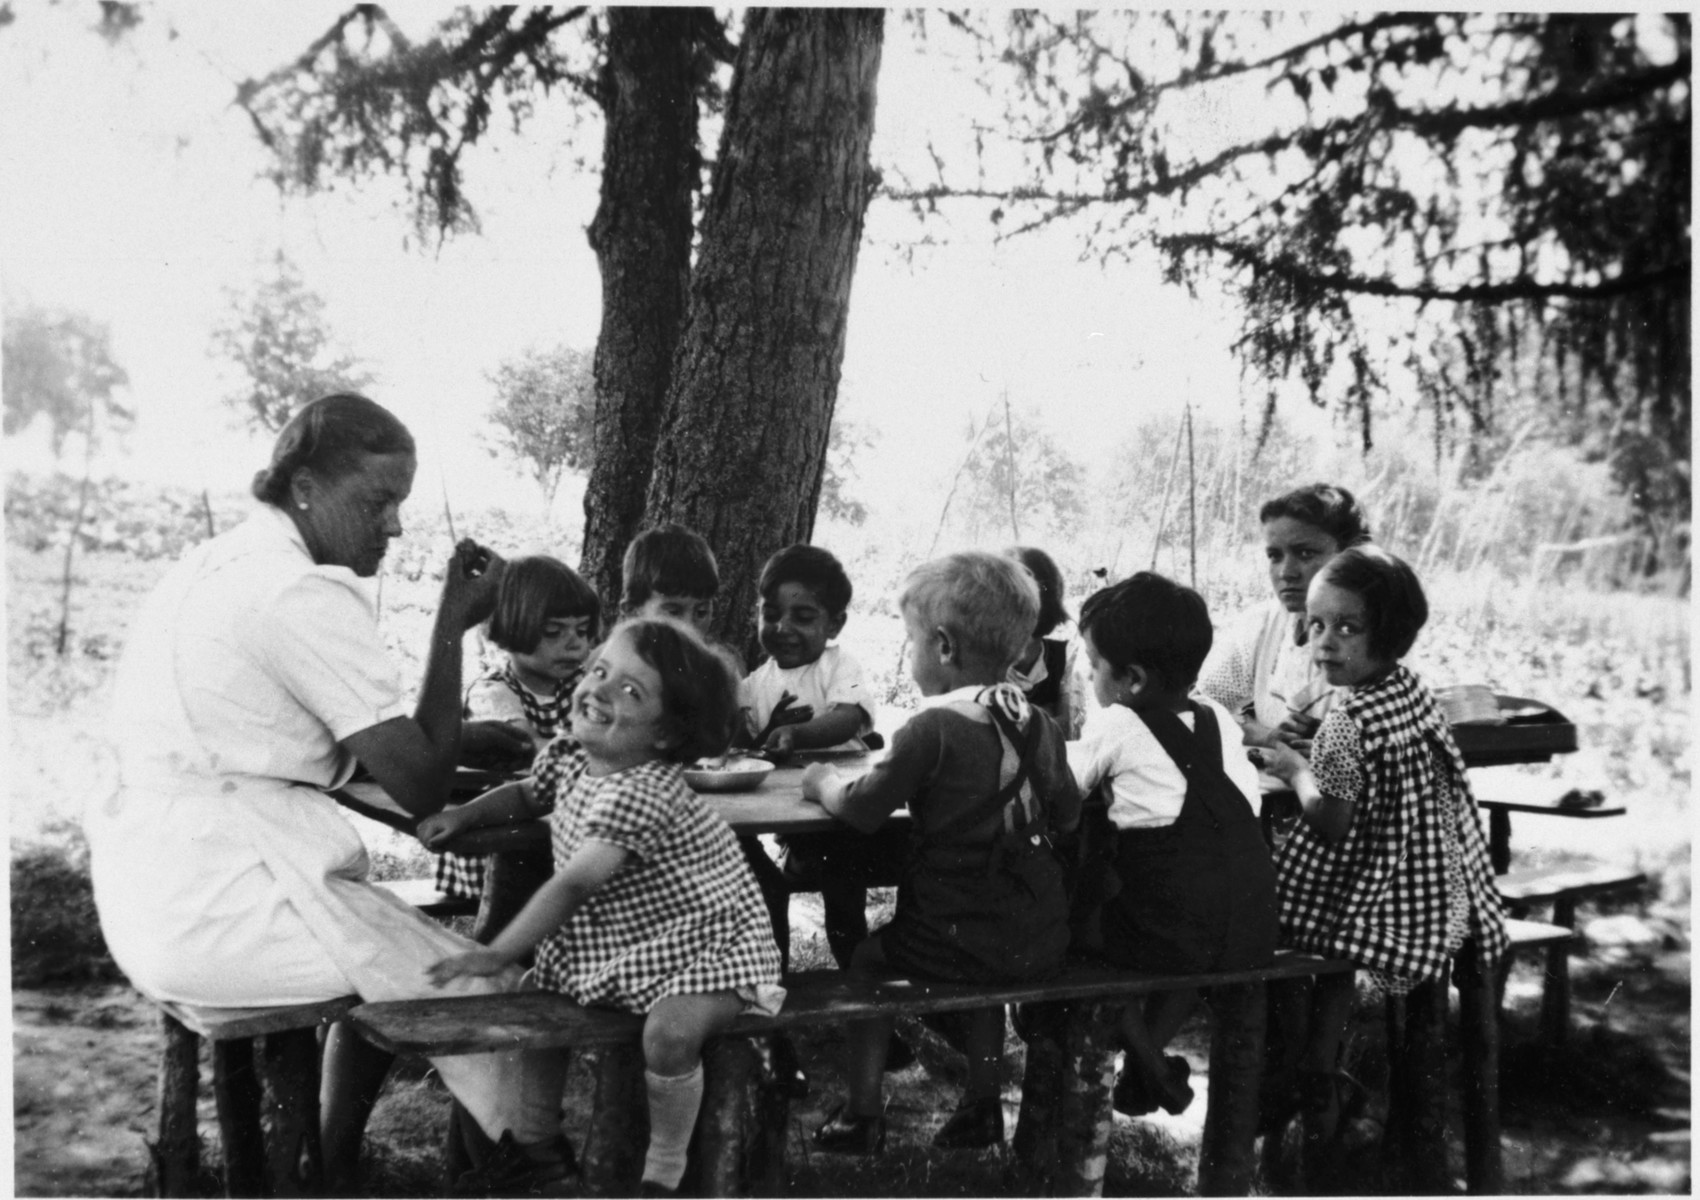 Young children gather around a picnic table in the Chateau des Avenieres children's home in Cruseiles.  Among those pictured is the teacher, Aloisia Schwarzschild.